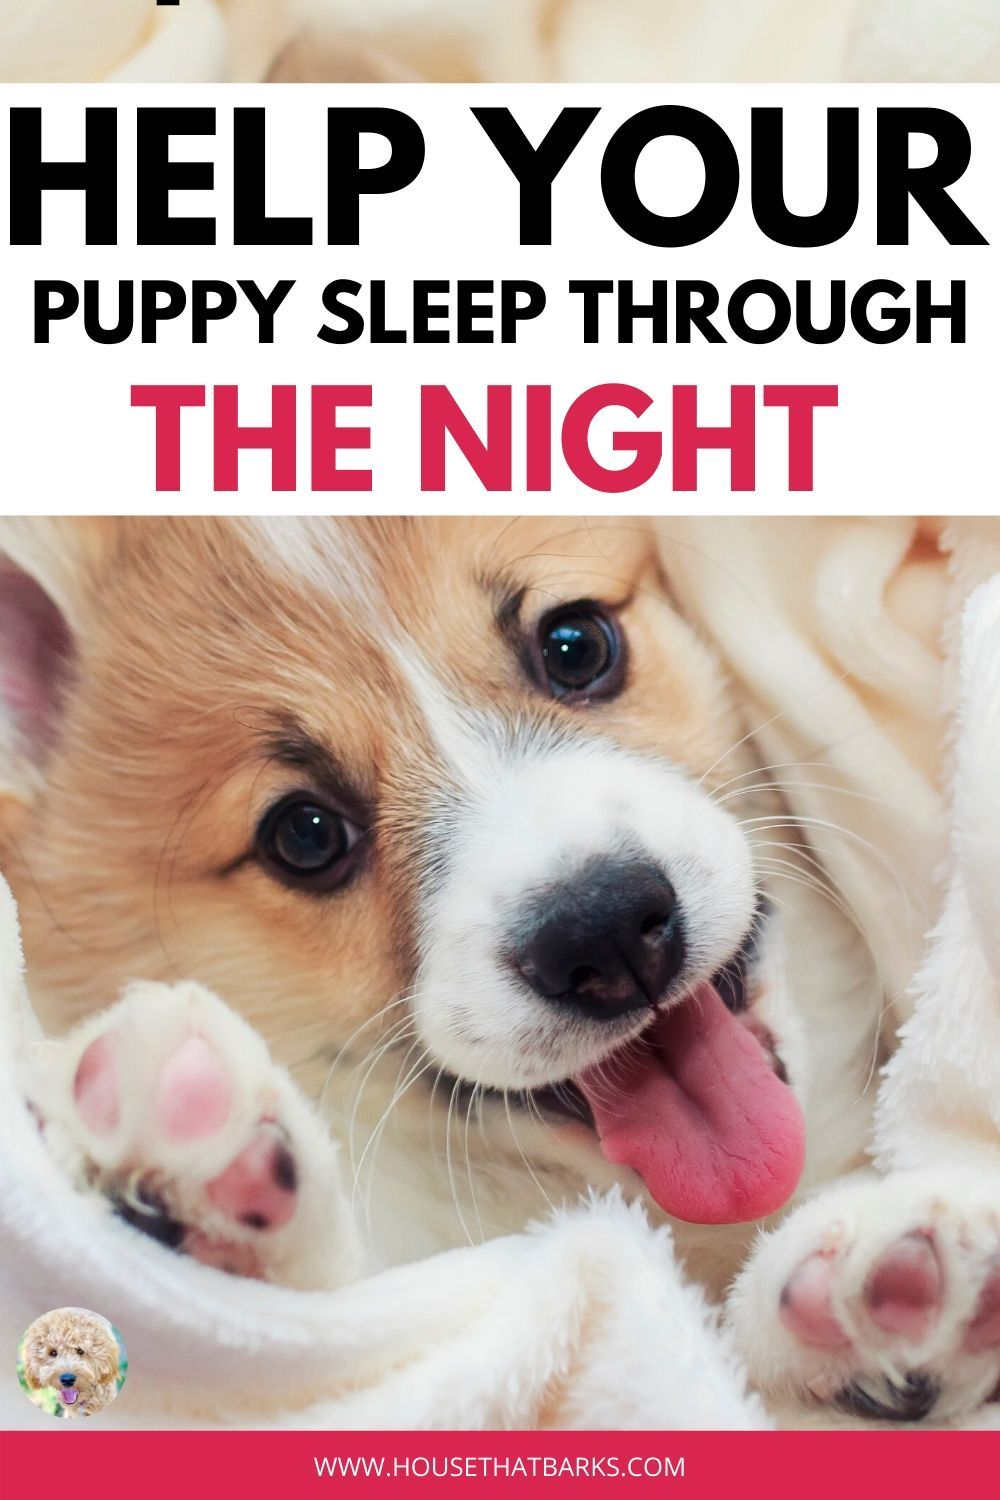 Helping Your Puppy Sleep Through The Night Puppy Sleeping In 2020 Sleeping Puppies Puppies Puppy Snuggles